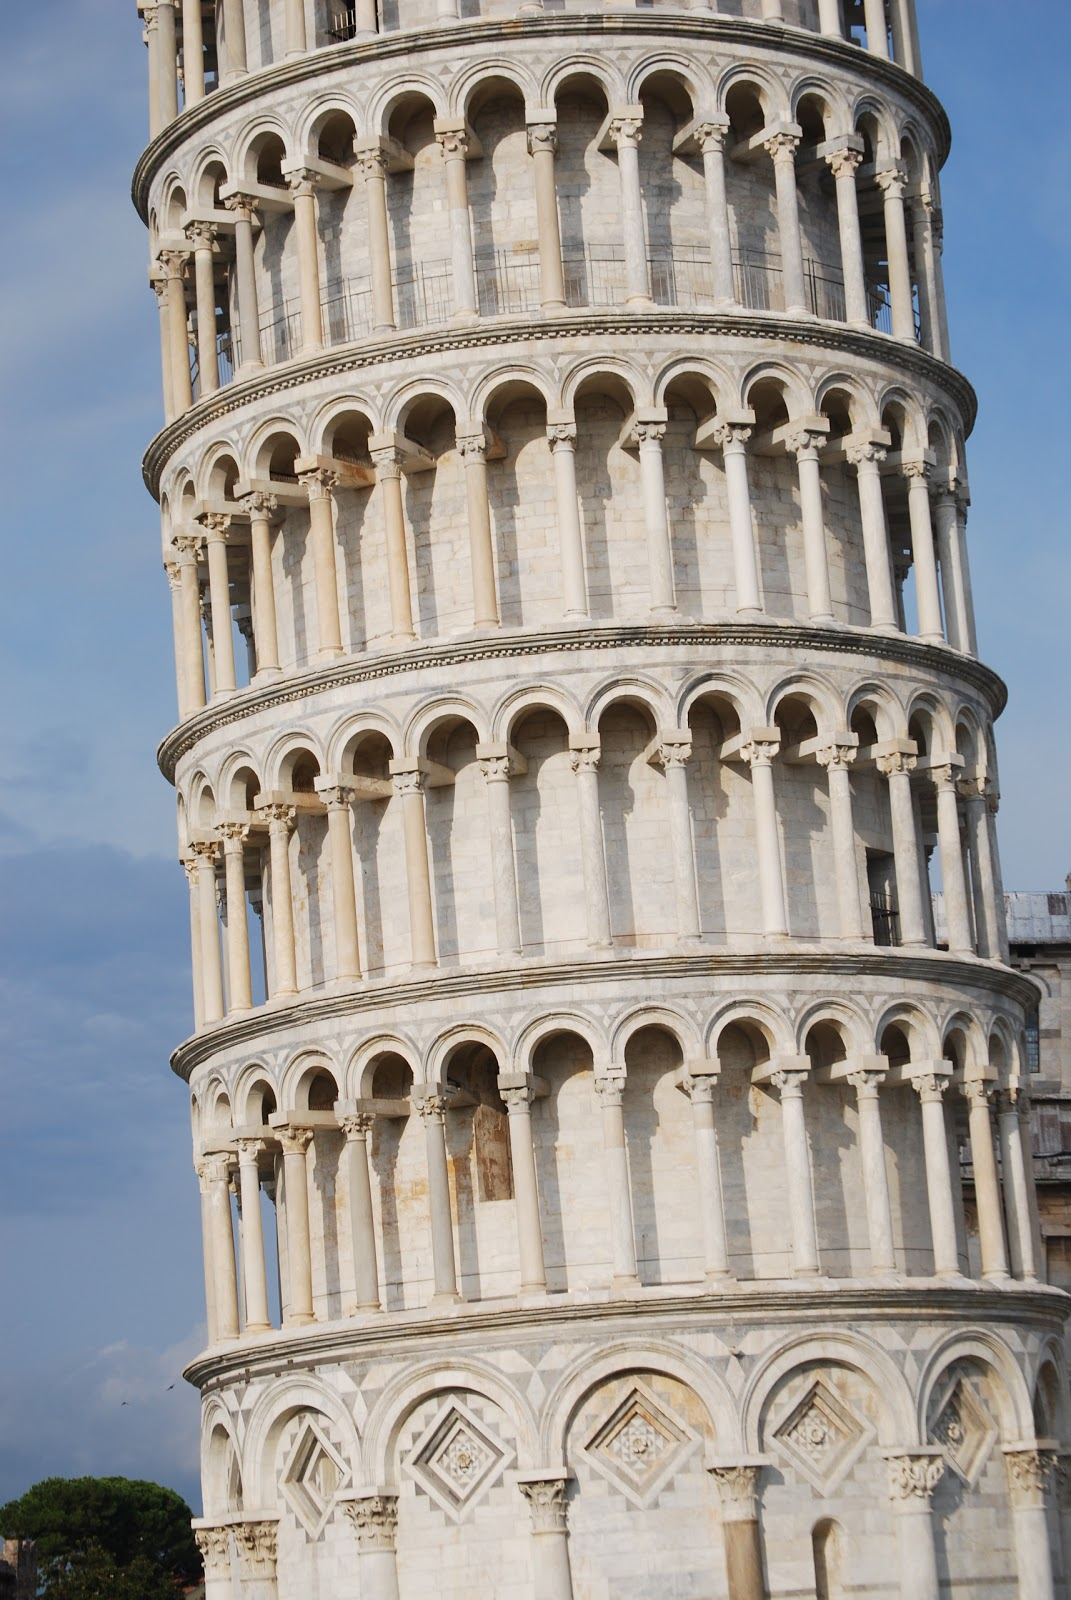 Mediterranean cruise pisa italy part 11 - Leaning tower of pisa ...